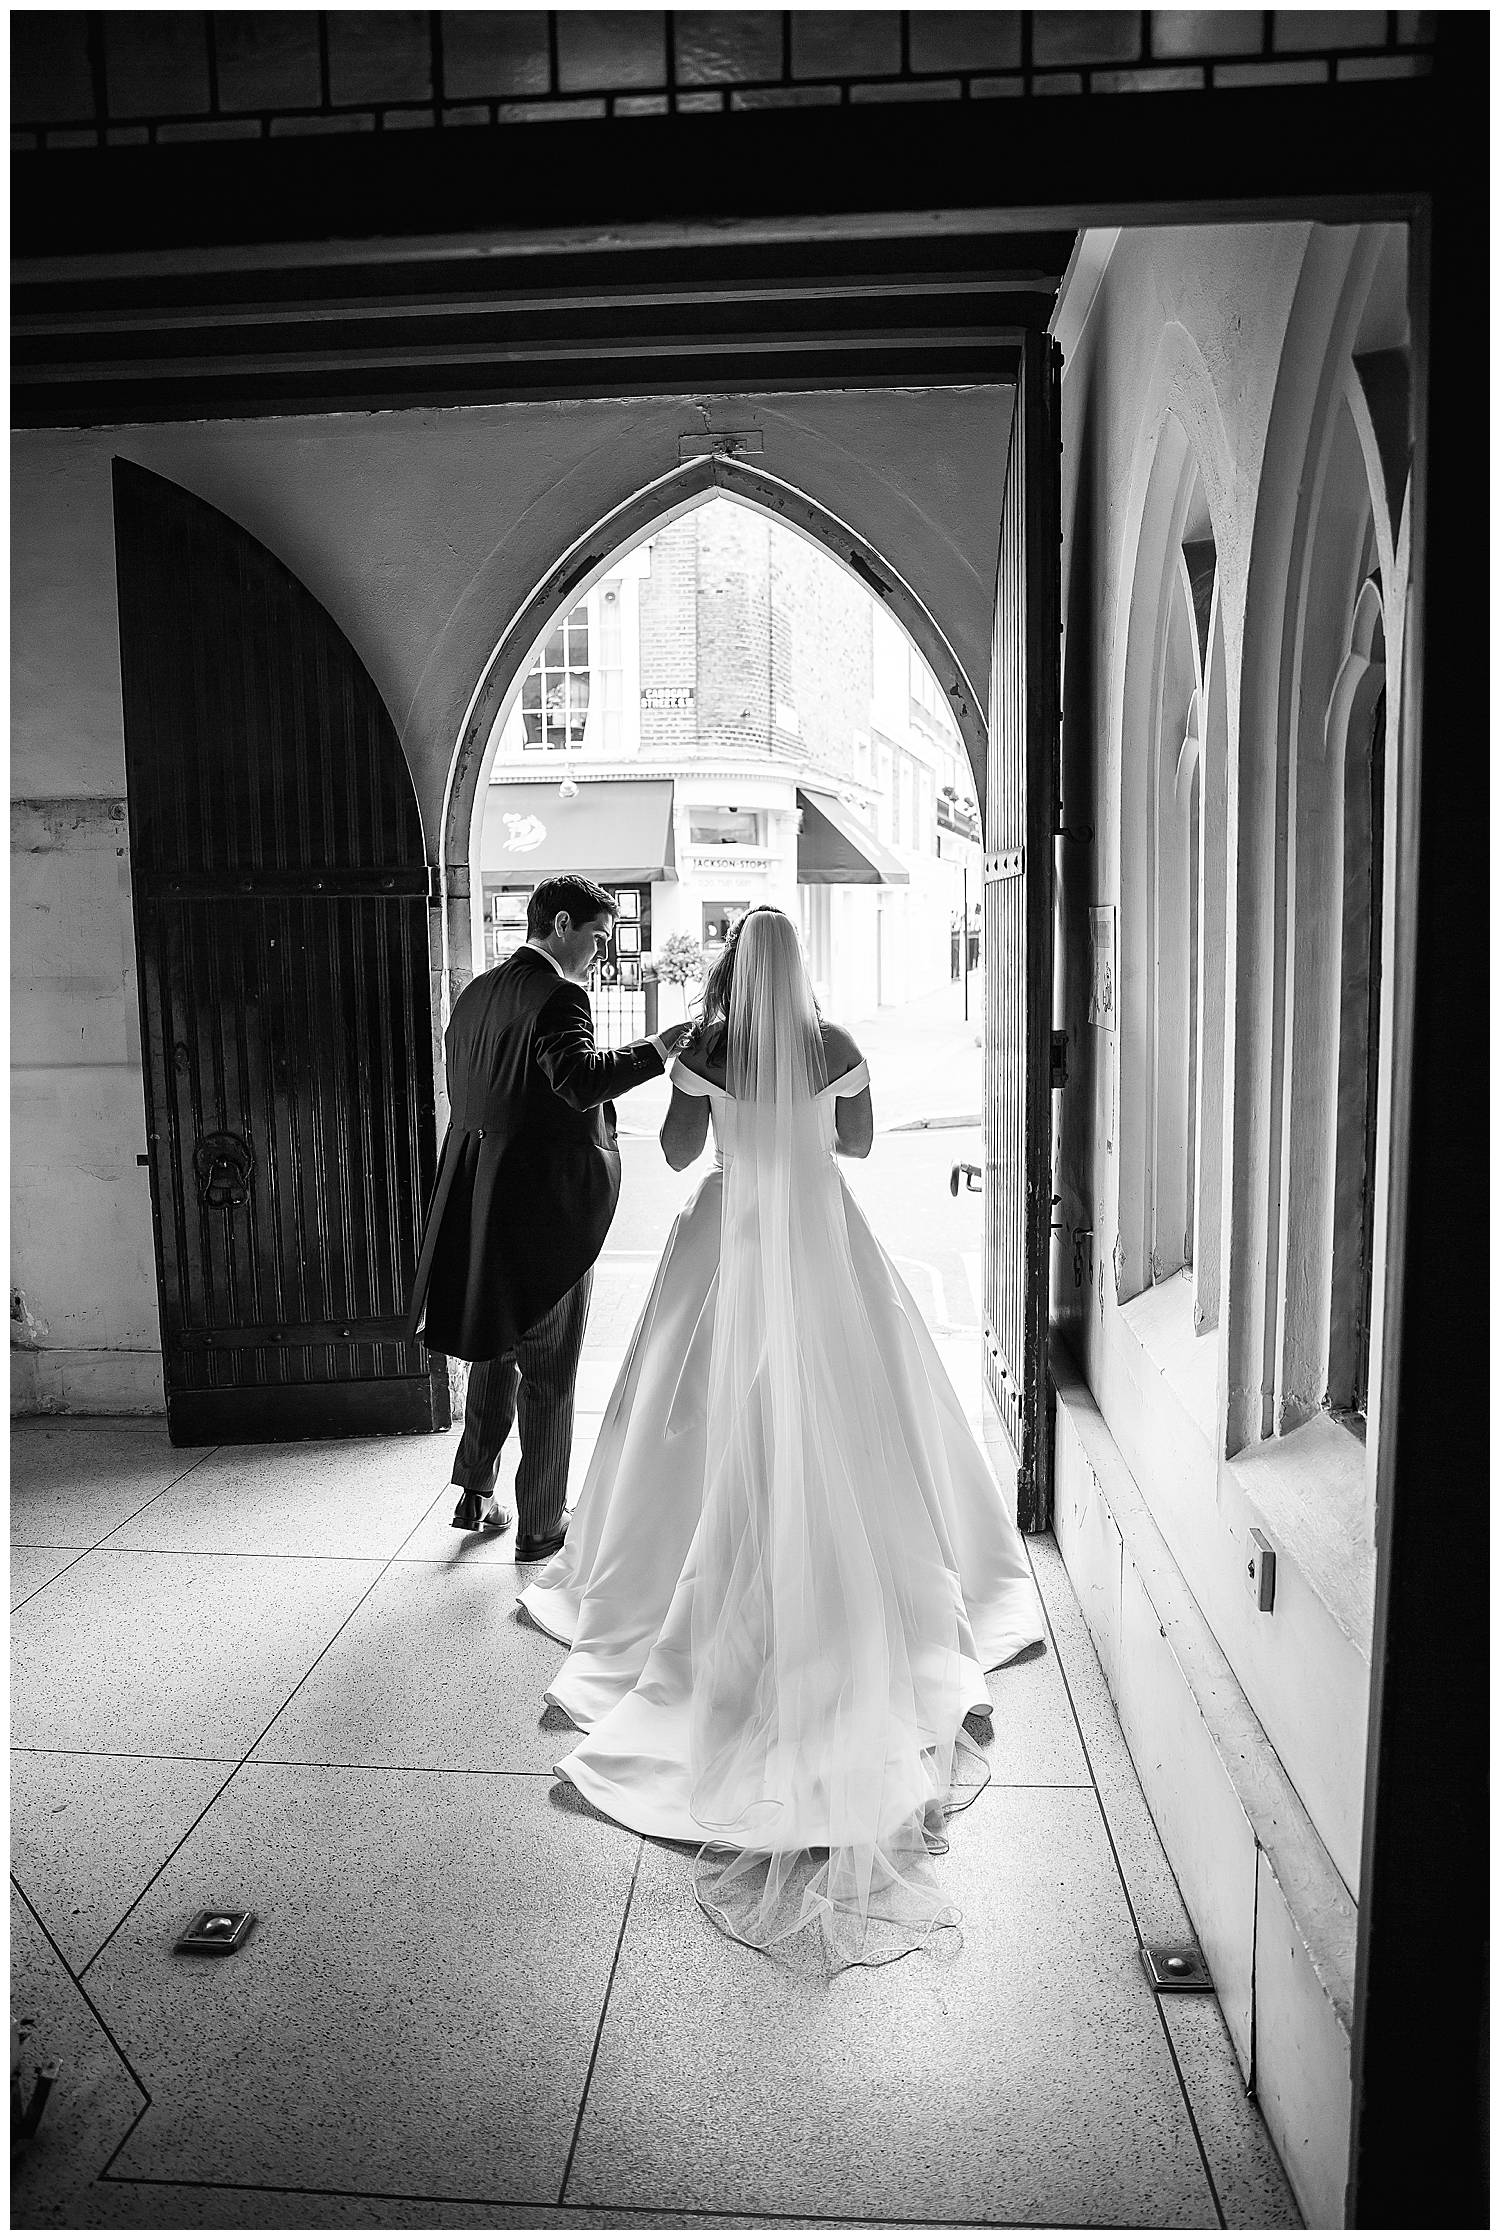 leaving wedding at St Mary's Cadogan Street SW3